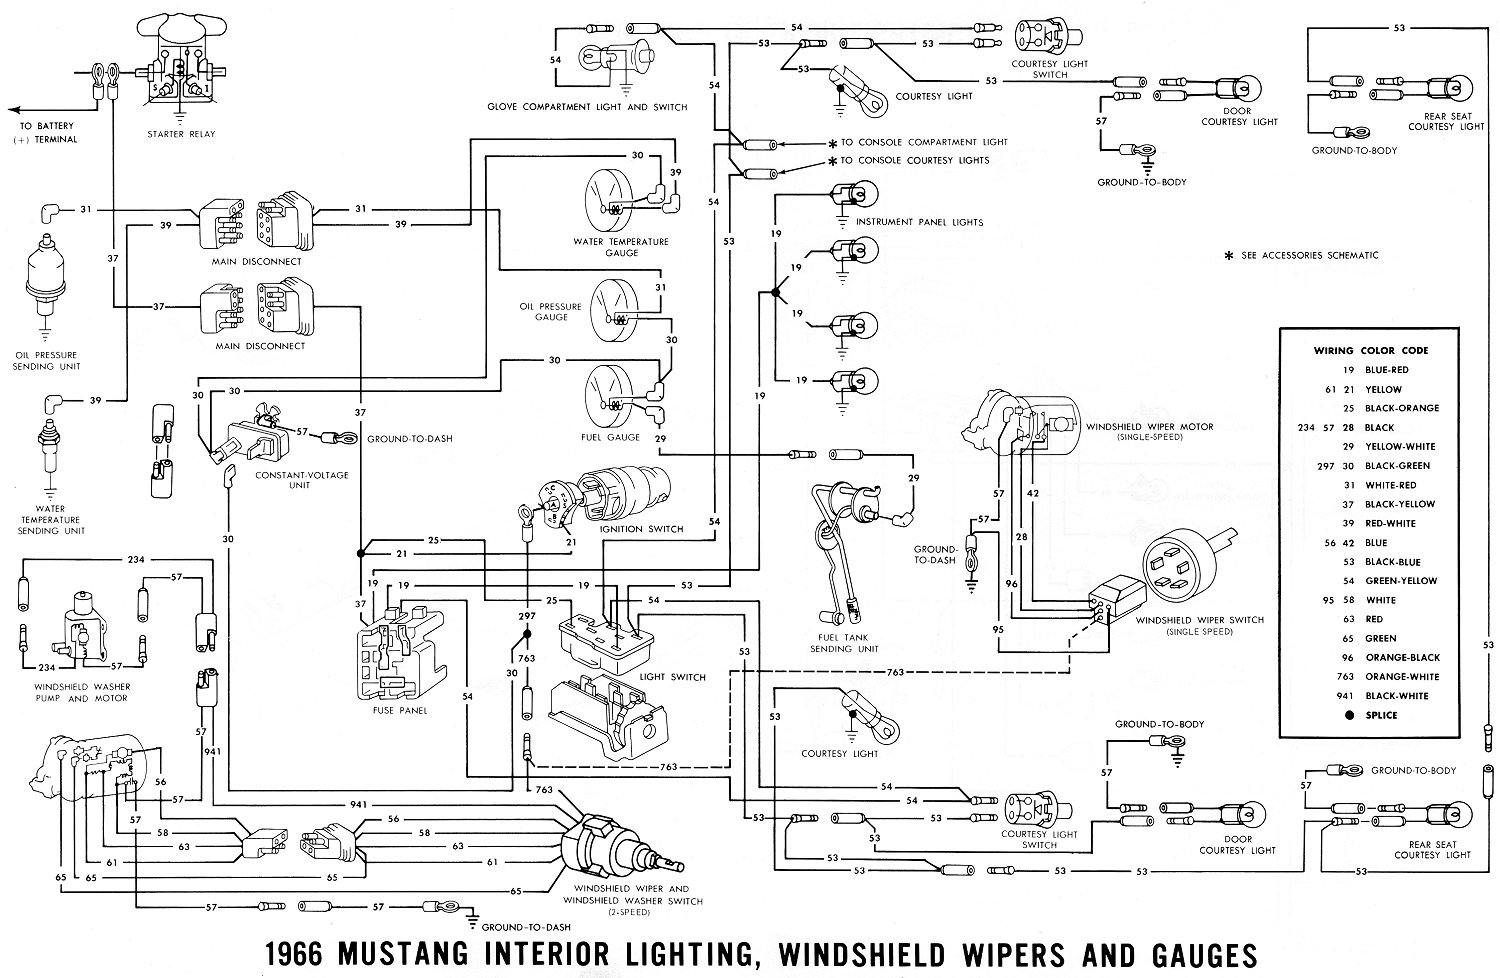 66inter1 2001 mustang wiring diagram wiring diagram simonand 2001 ford mustang relay diagram at webbmarketing.co